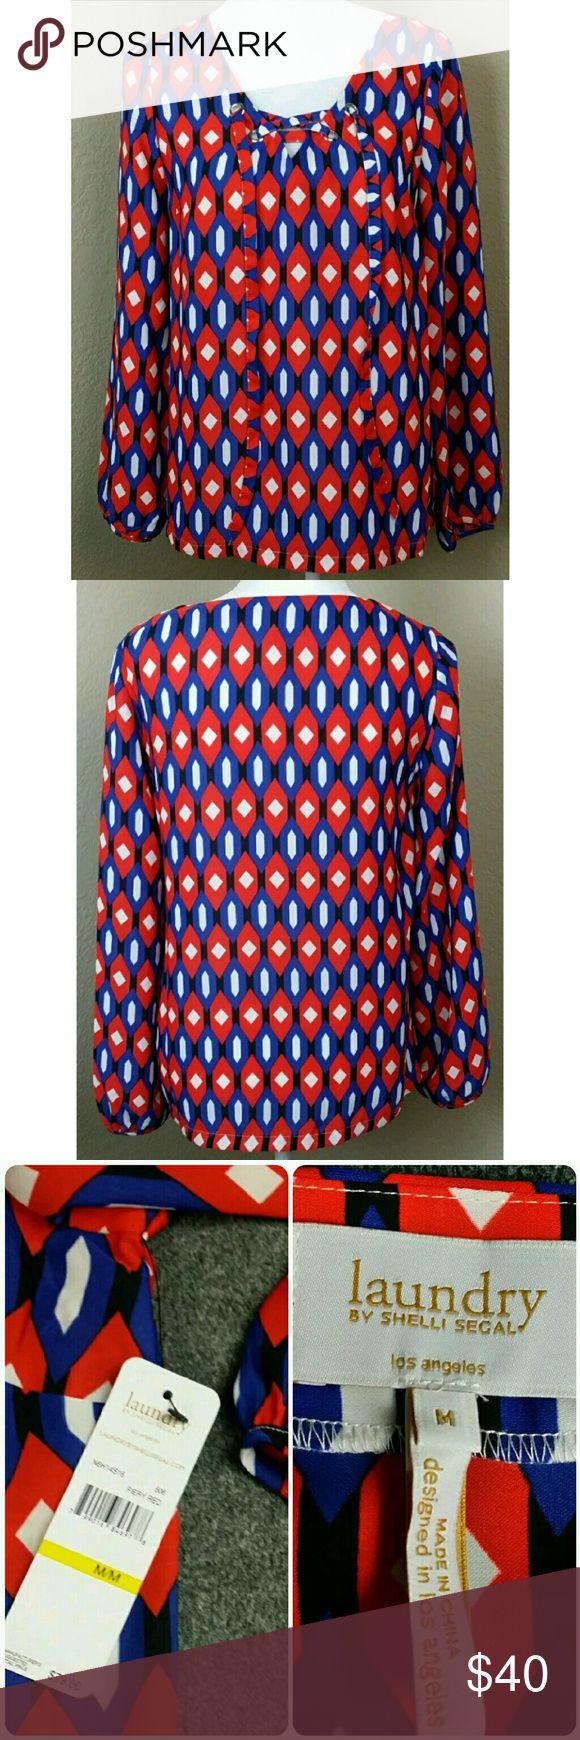 """Laundry Shelli Segal Fiery Red Laundry Shelli Segal laced front Top Shirt Fiery Red White & Blue Blouse Career Work Size: Medium  MSRP $79   measurements laying flat  armpit to armpit 18""""  length 26""""       1-18 Laundry by Shelli Segal Tops Blouses"""